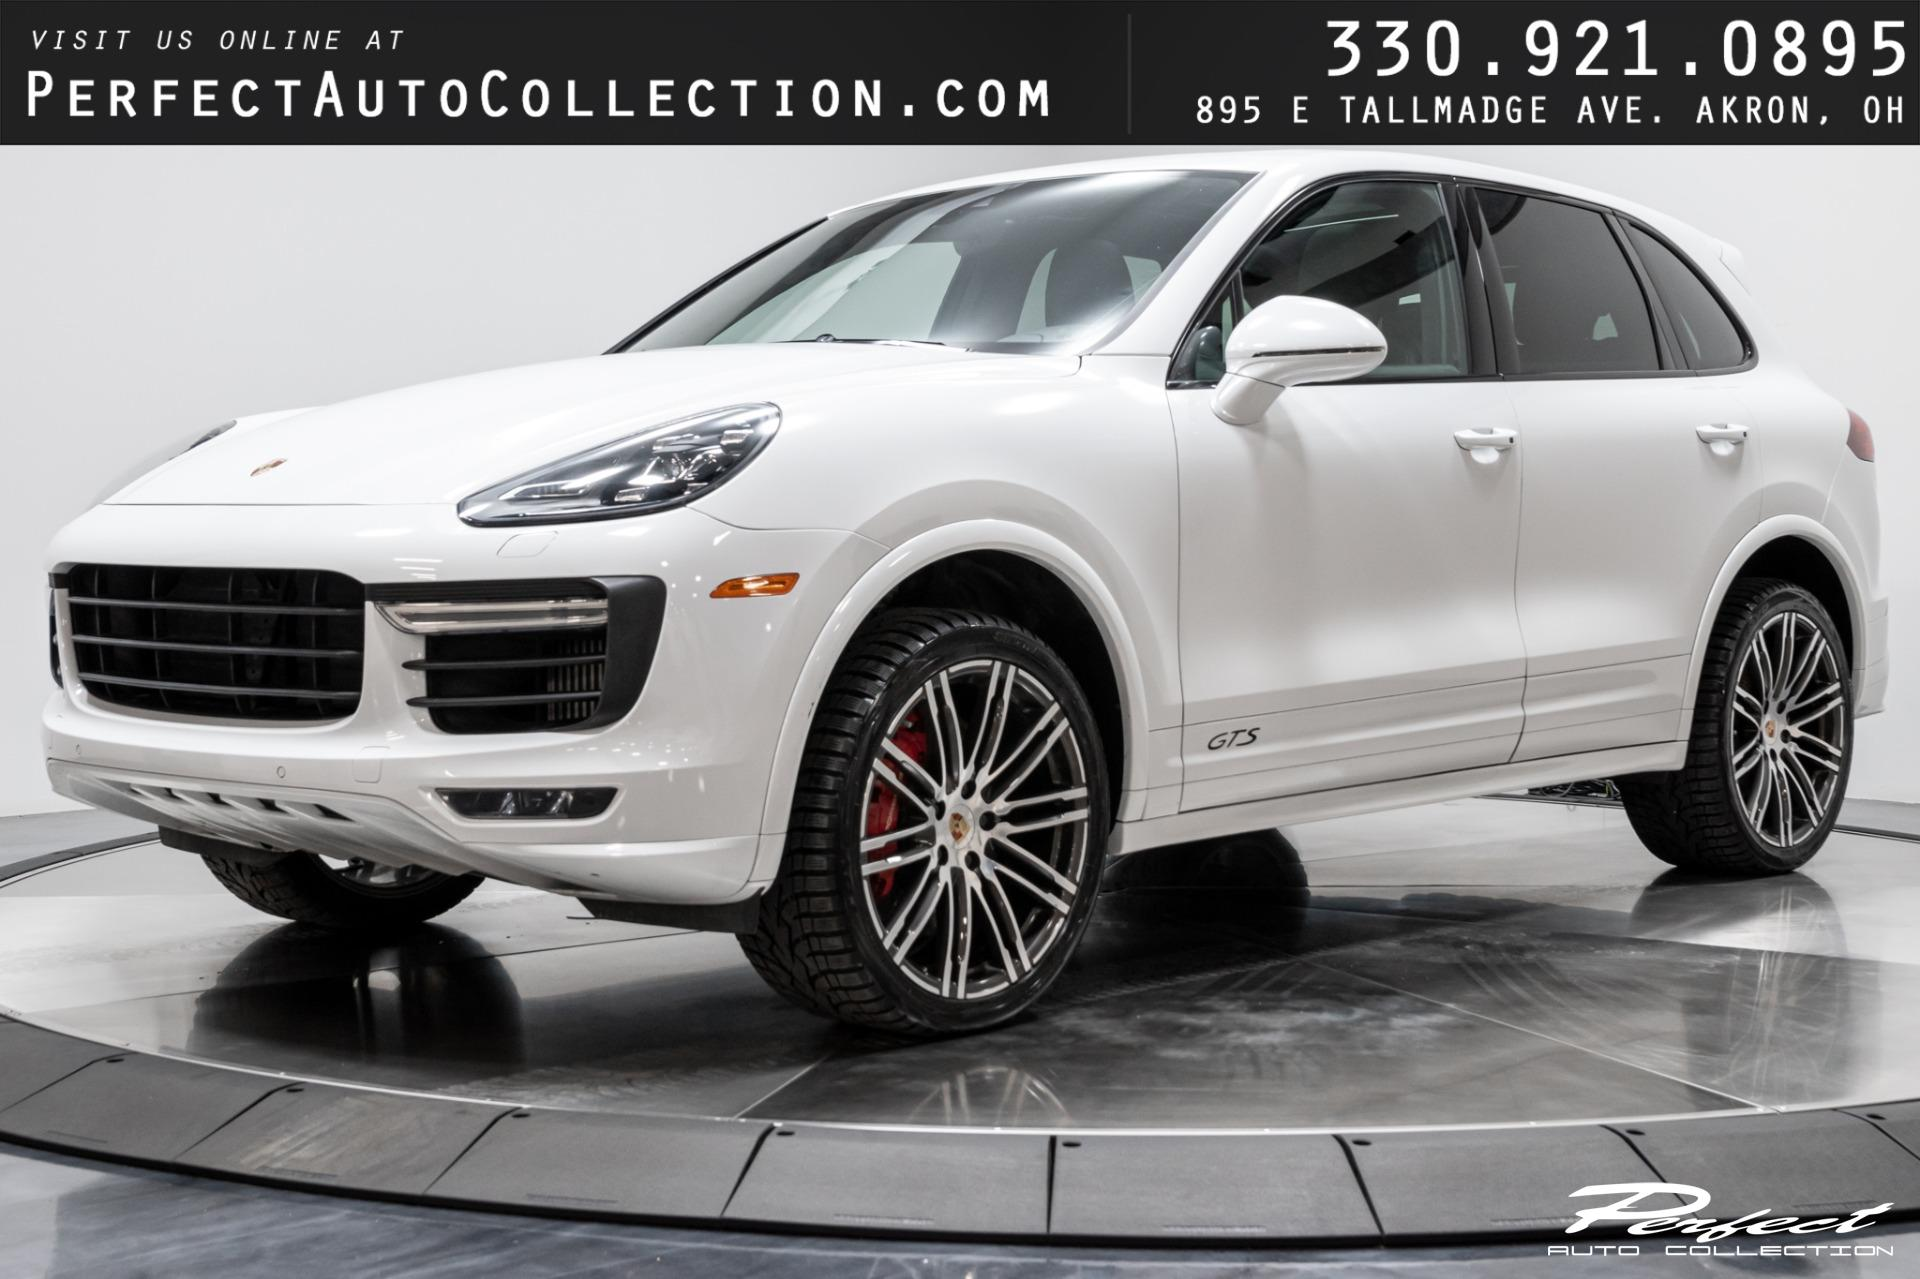 Used 2017 Porsche Cayenne GTS for sale $59,493 at Perfect Auto Collection in Akron OH 44310 1